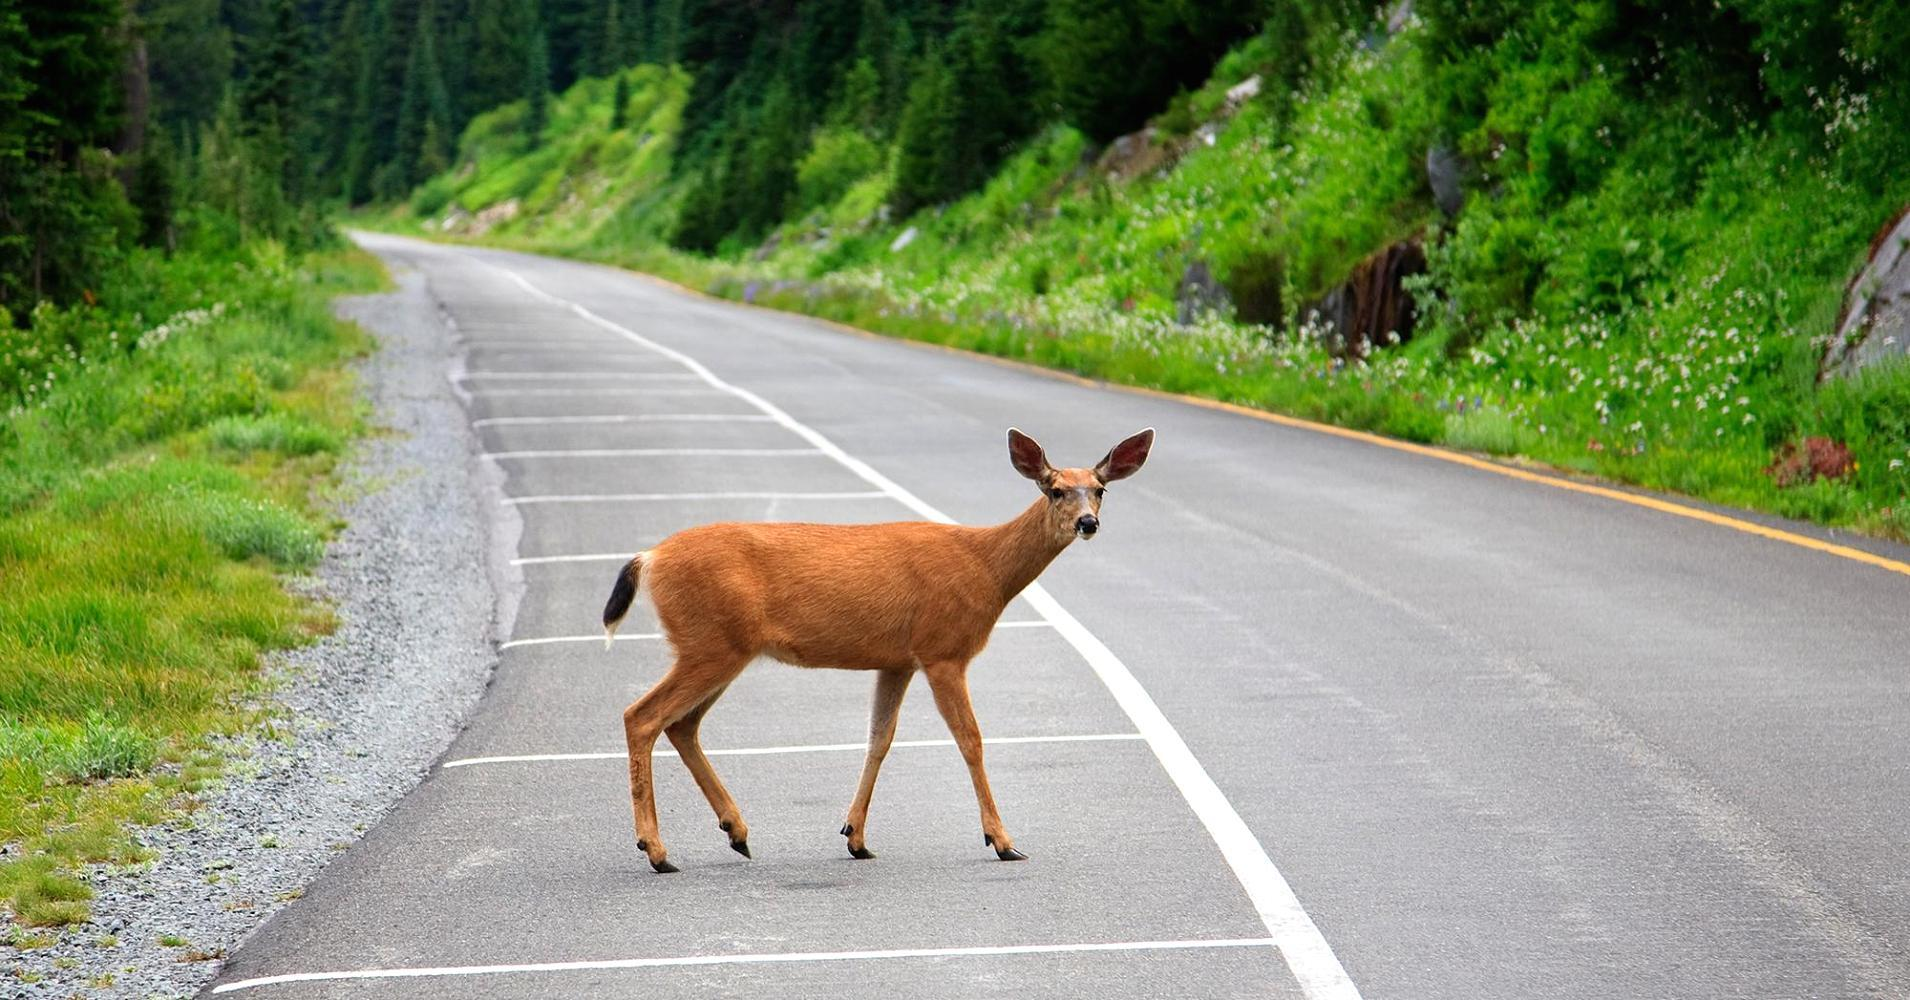 How Bambi is costing drivers $8 billion per year